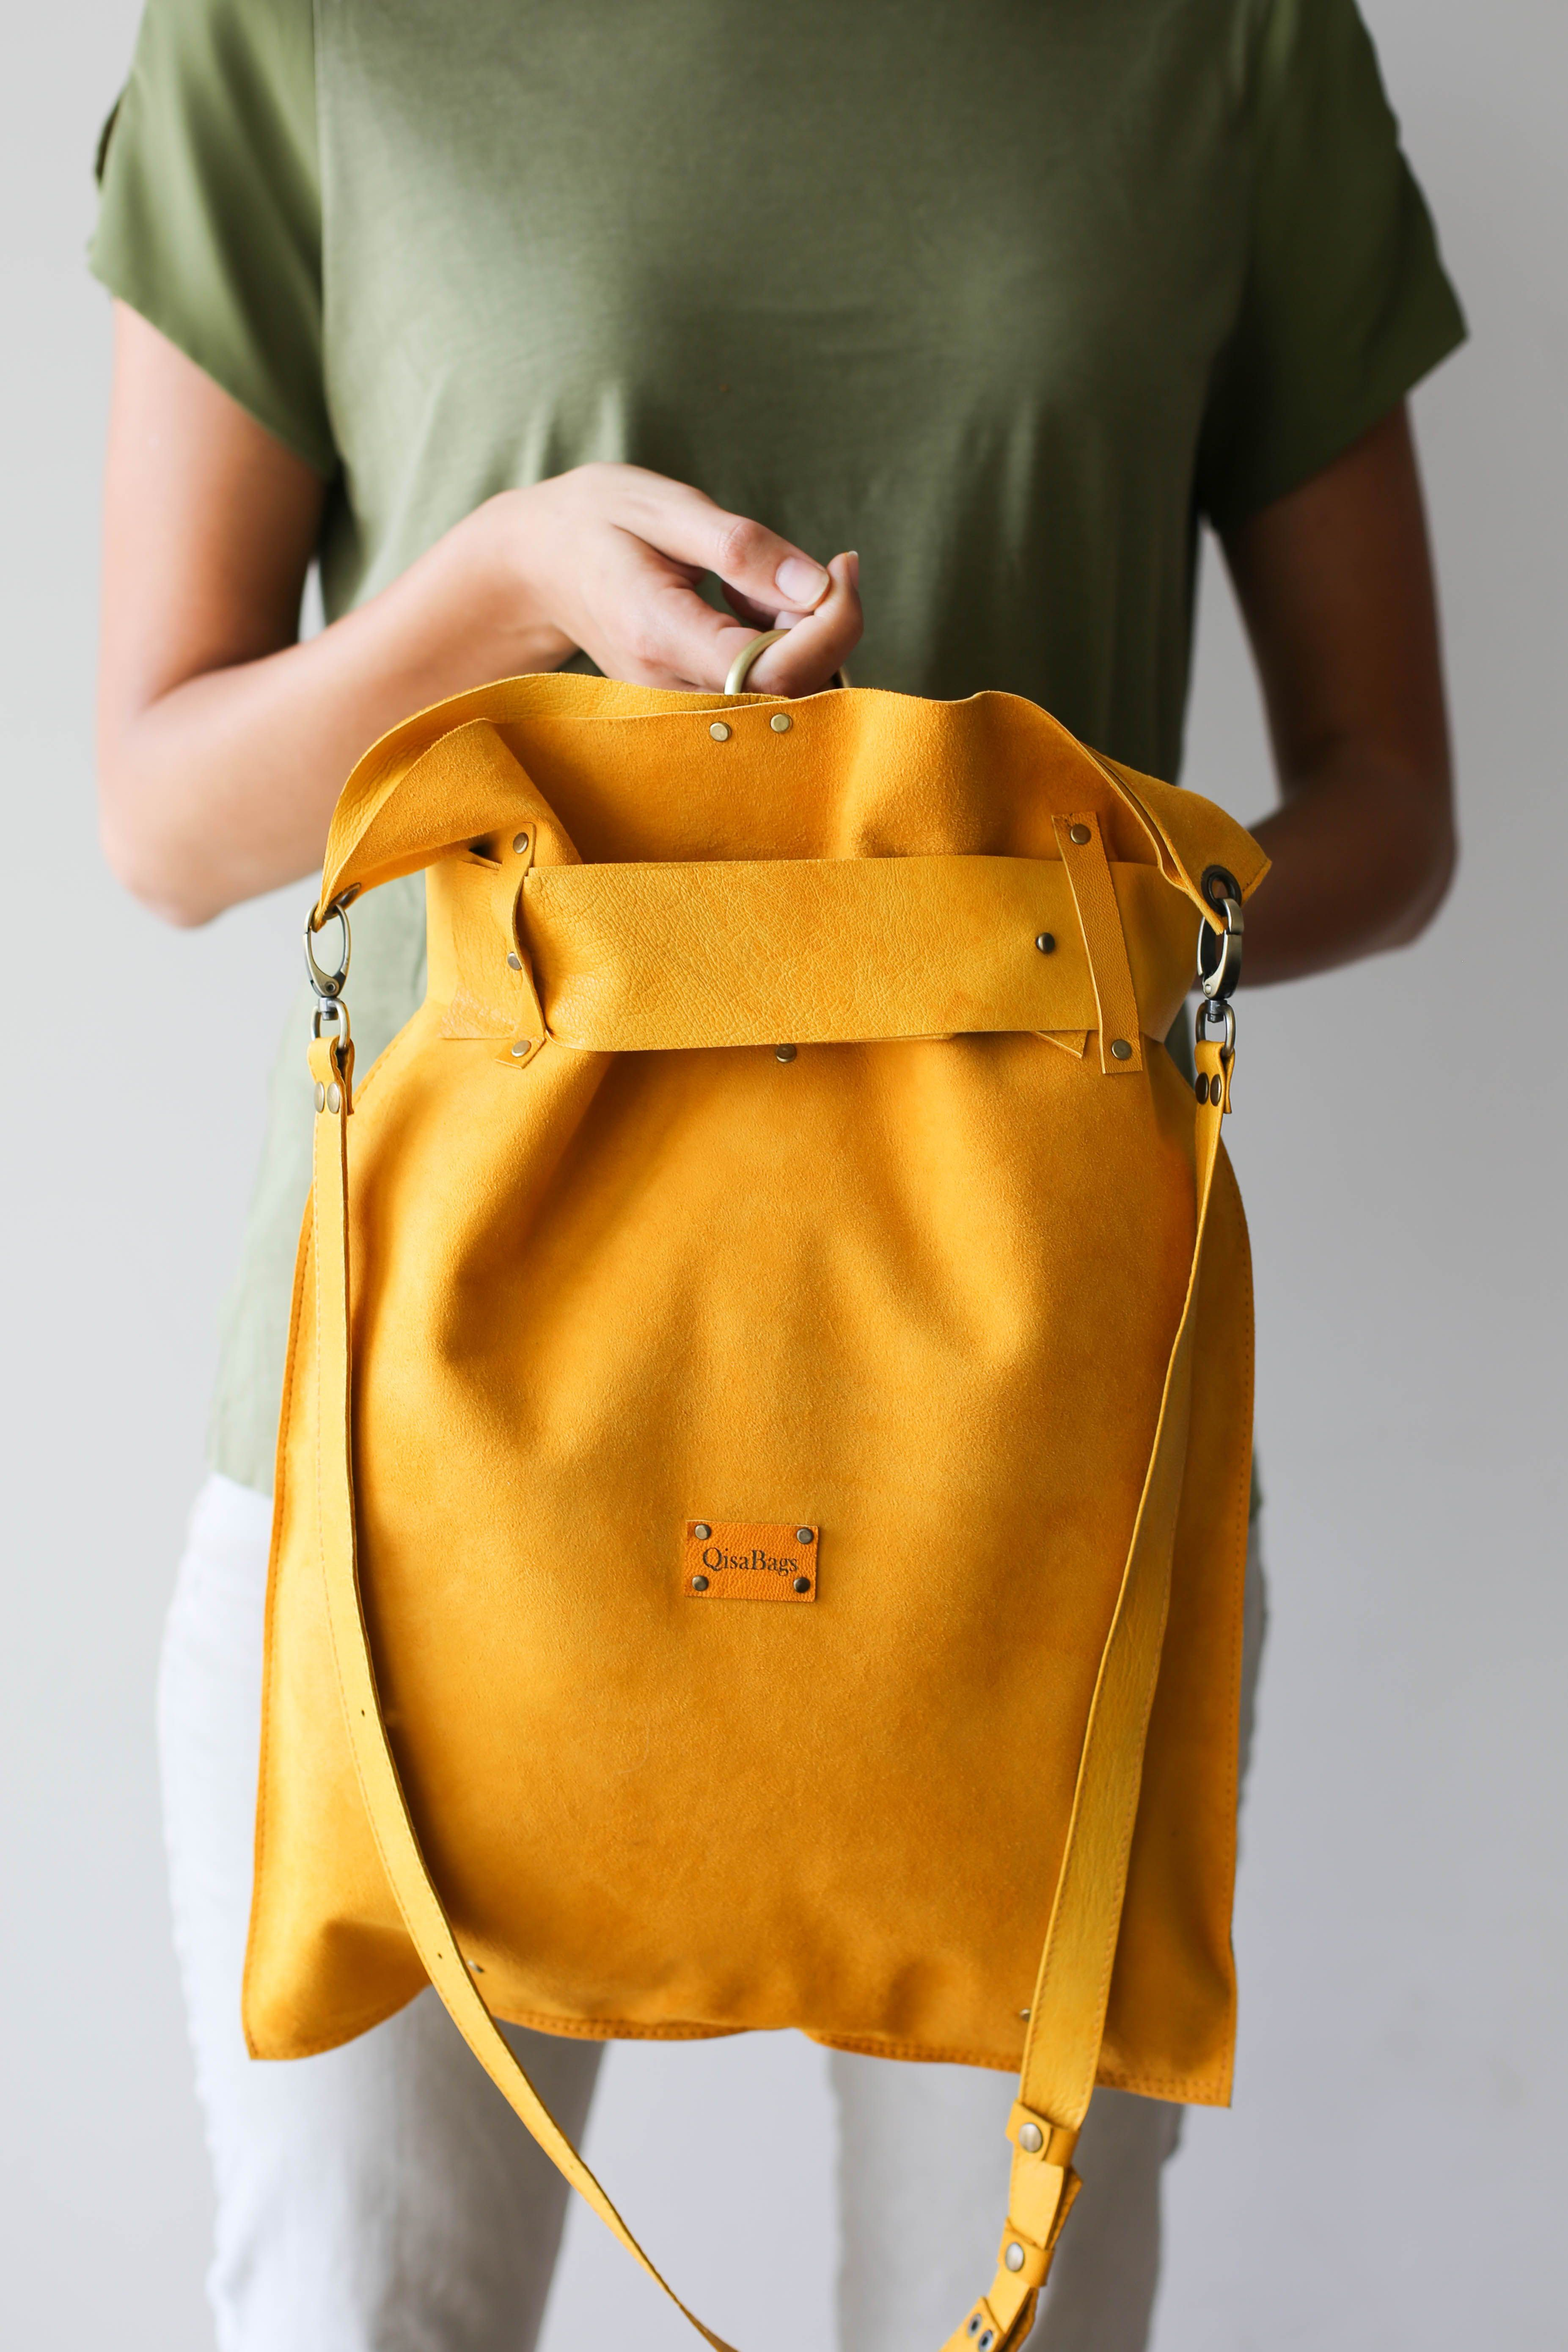 1ad117b2d7 Leather Backpack Women, Large Leather Backpack, Laptop Backpack, Womens  Backpack, Travel Backpack Women, Leather Rucksack, Yellow backpack, Yellow  Bag, ...